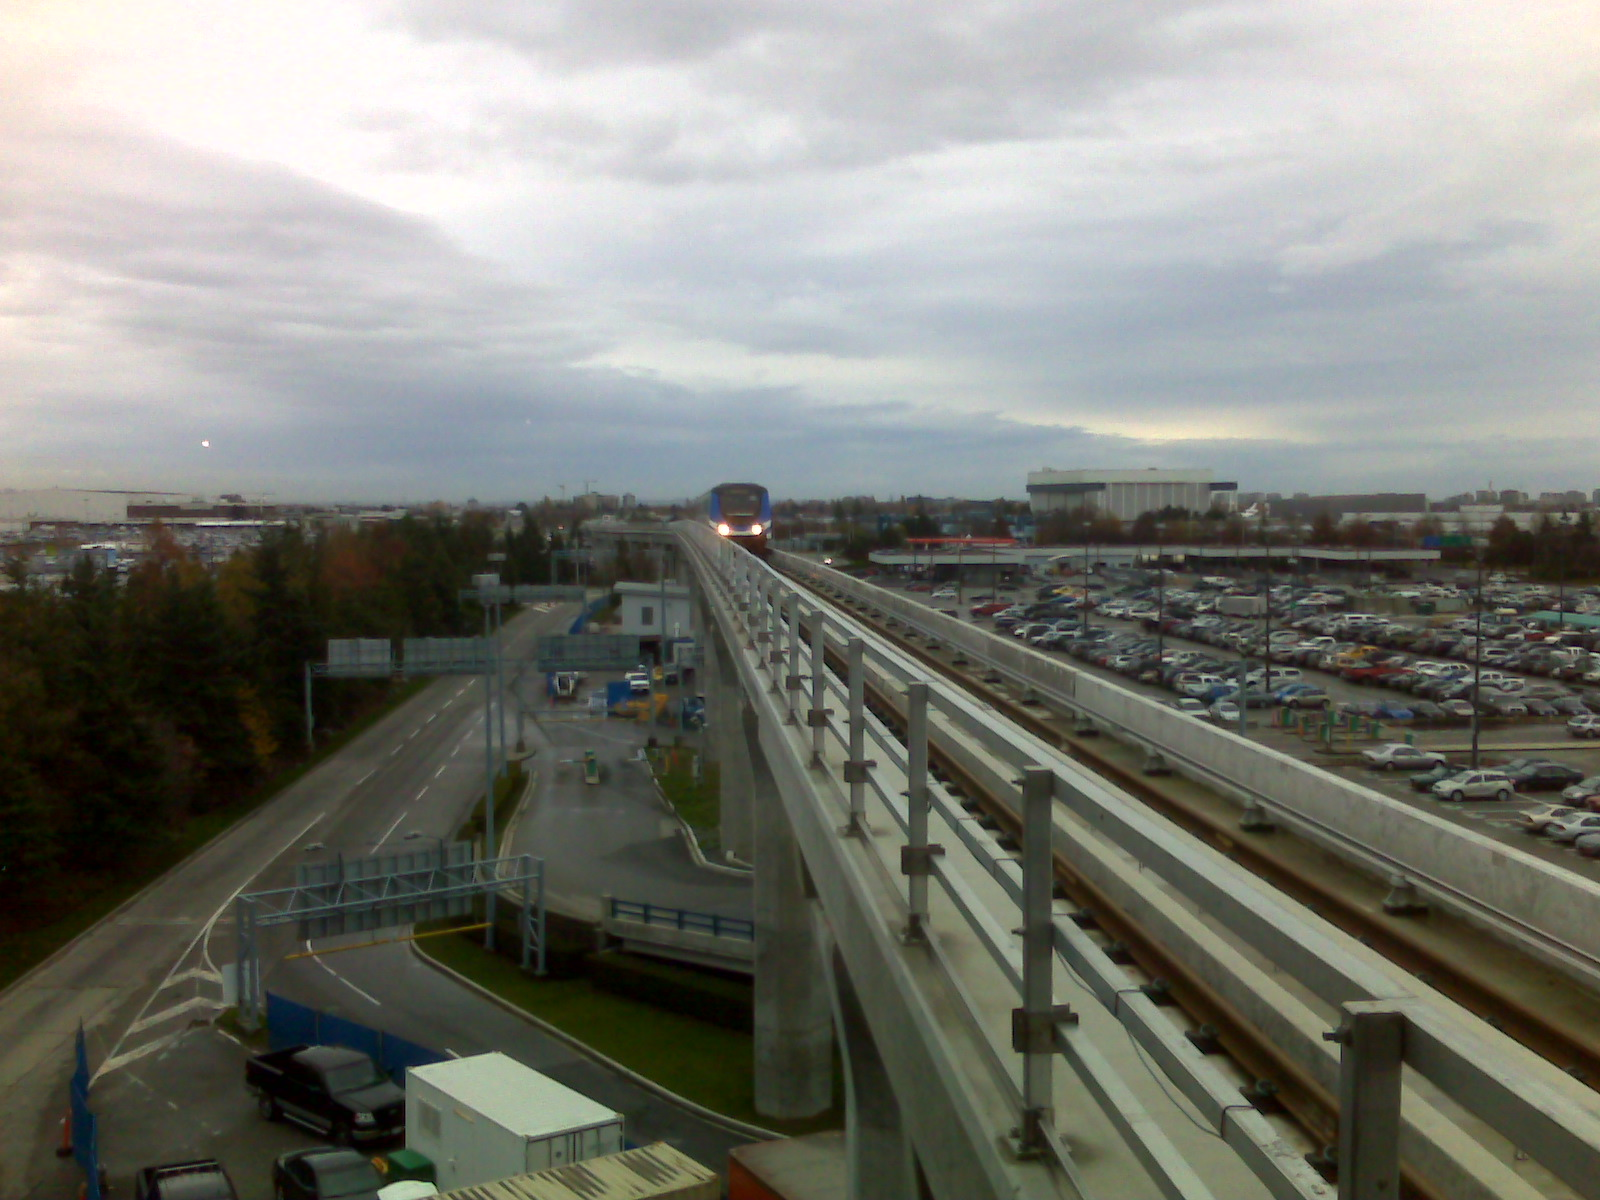 The Canada Line train approaches Vancouver International Airport Station.